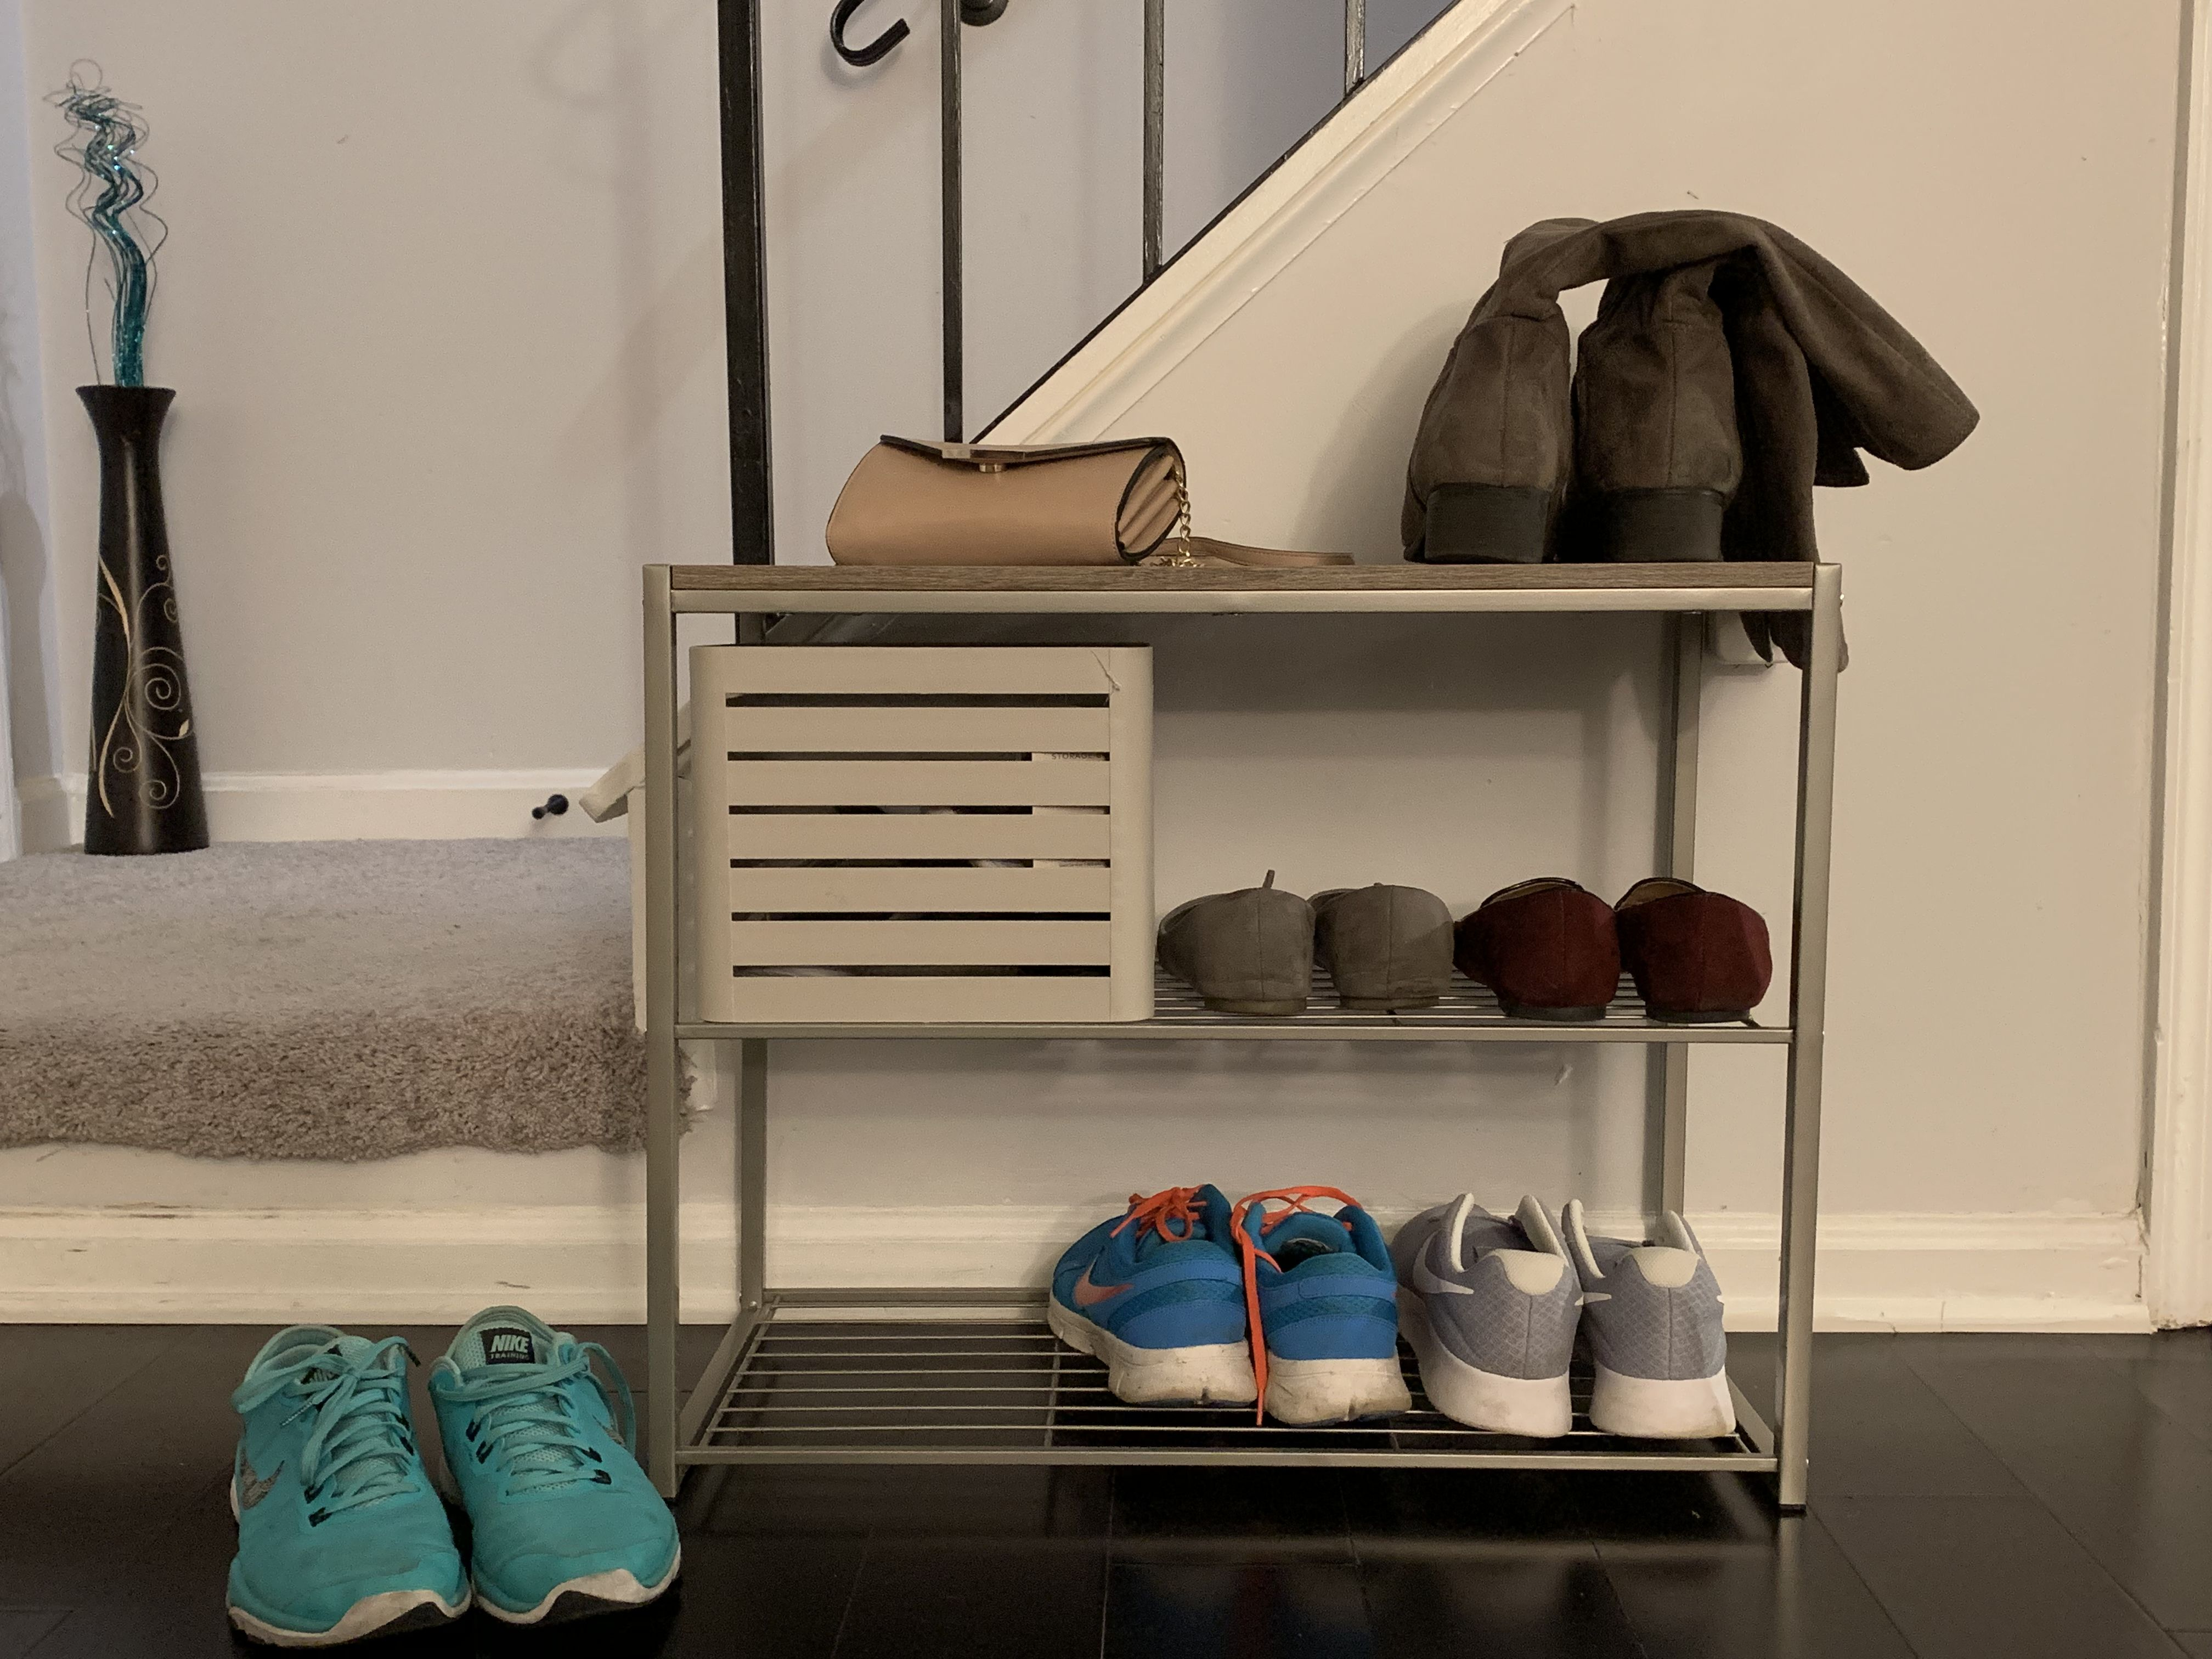 Shoe Cubby Target 3tiershoerack Gray Threshold Shoe Cubby